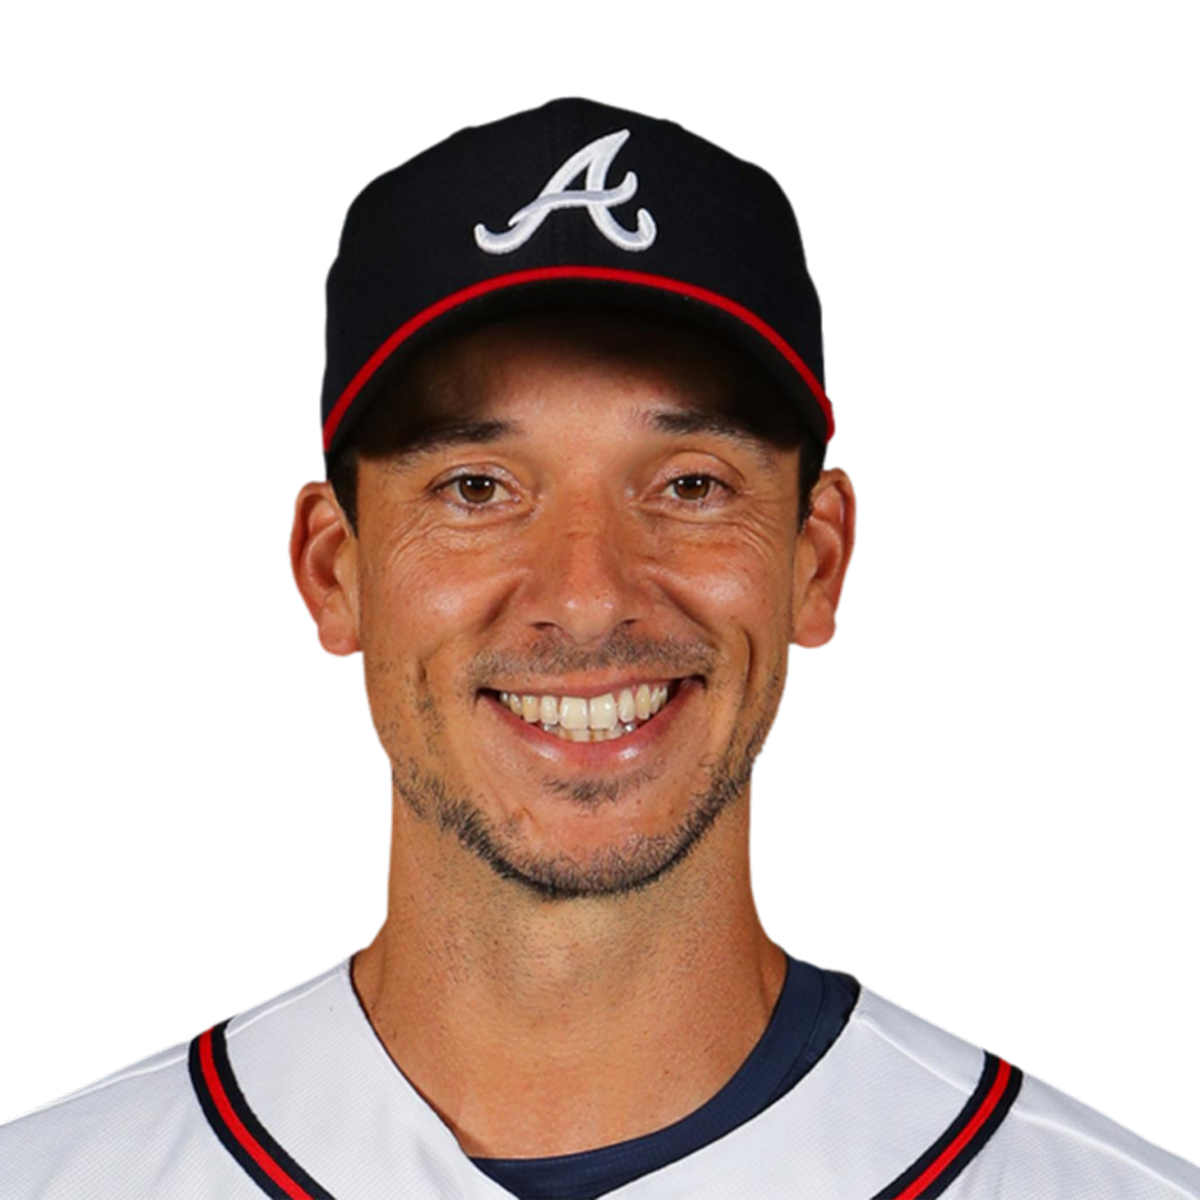 charlie morton considering retirement after 2020 charlie morton news fantasypros charlie morton considering retirement